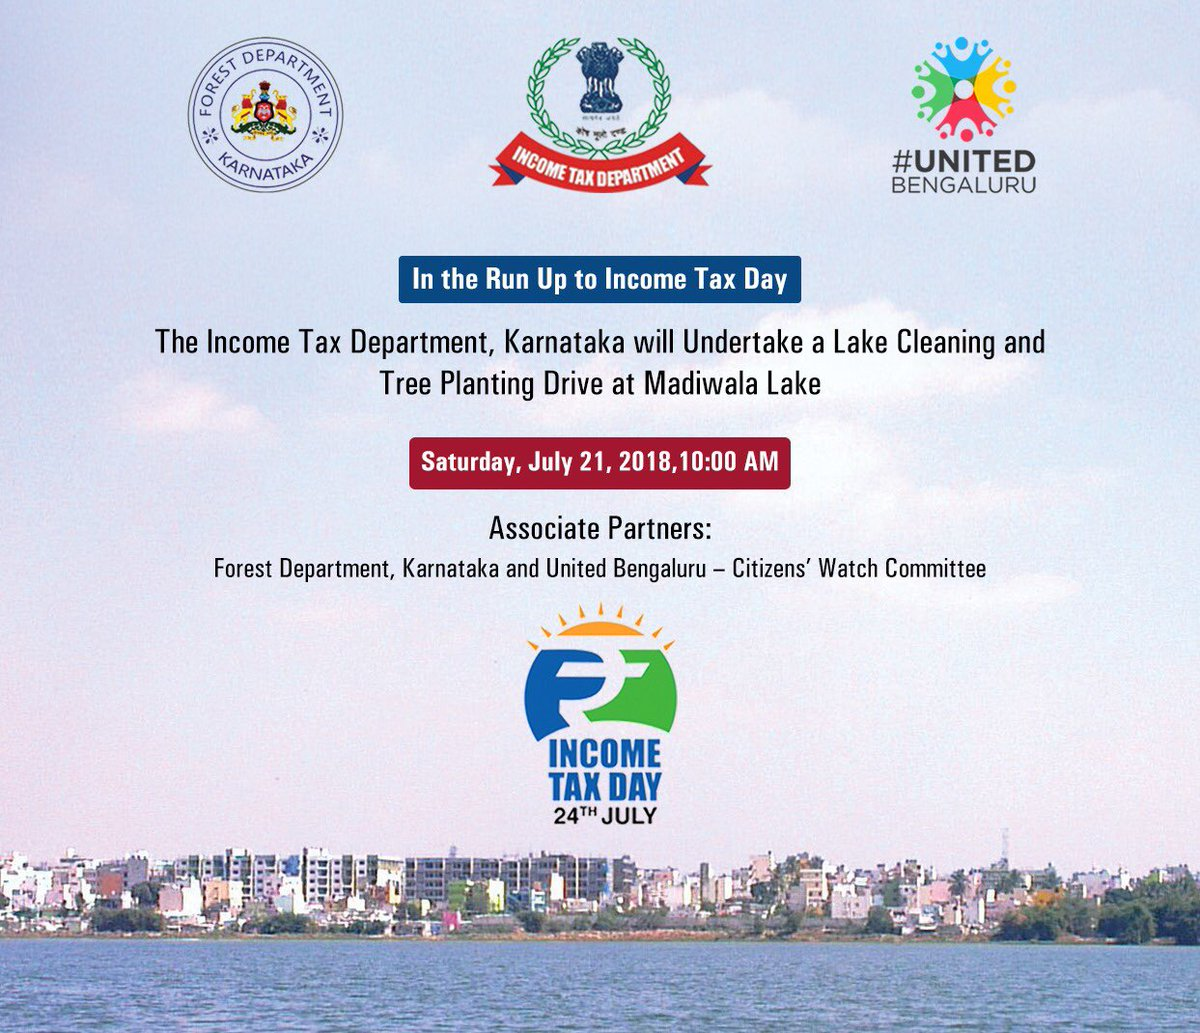 On the occasion of #IncomeTaxDay  @IncomeTaxIndia in association with @KarnatakaForest and @unitedbengaluru is organising a lake cleaning and tree planting drive at #Madiwala lake on Saturday, 21st July at 10 AM.   Let us join and contribute for a Clean and Green #NammaBengaluru<br>http://pic.twitter.com/pDAZvf5aia